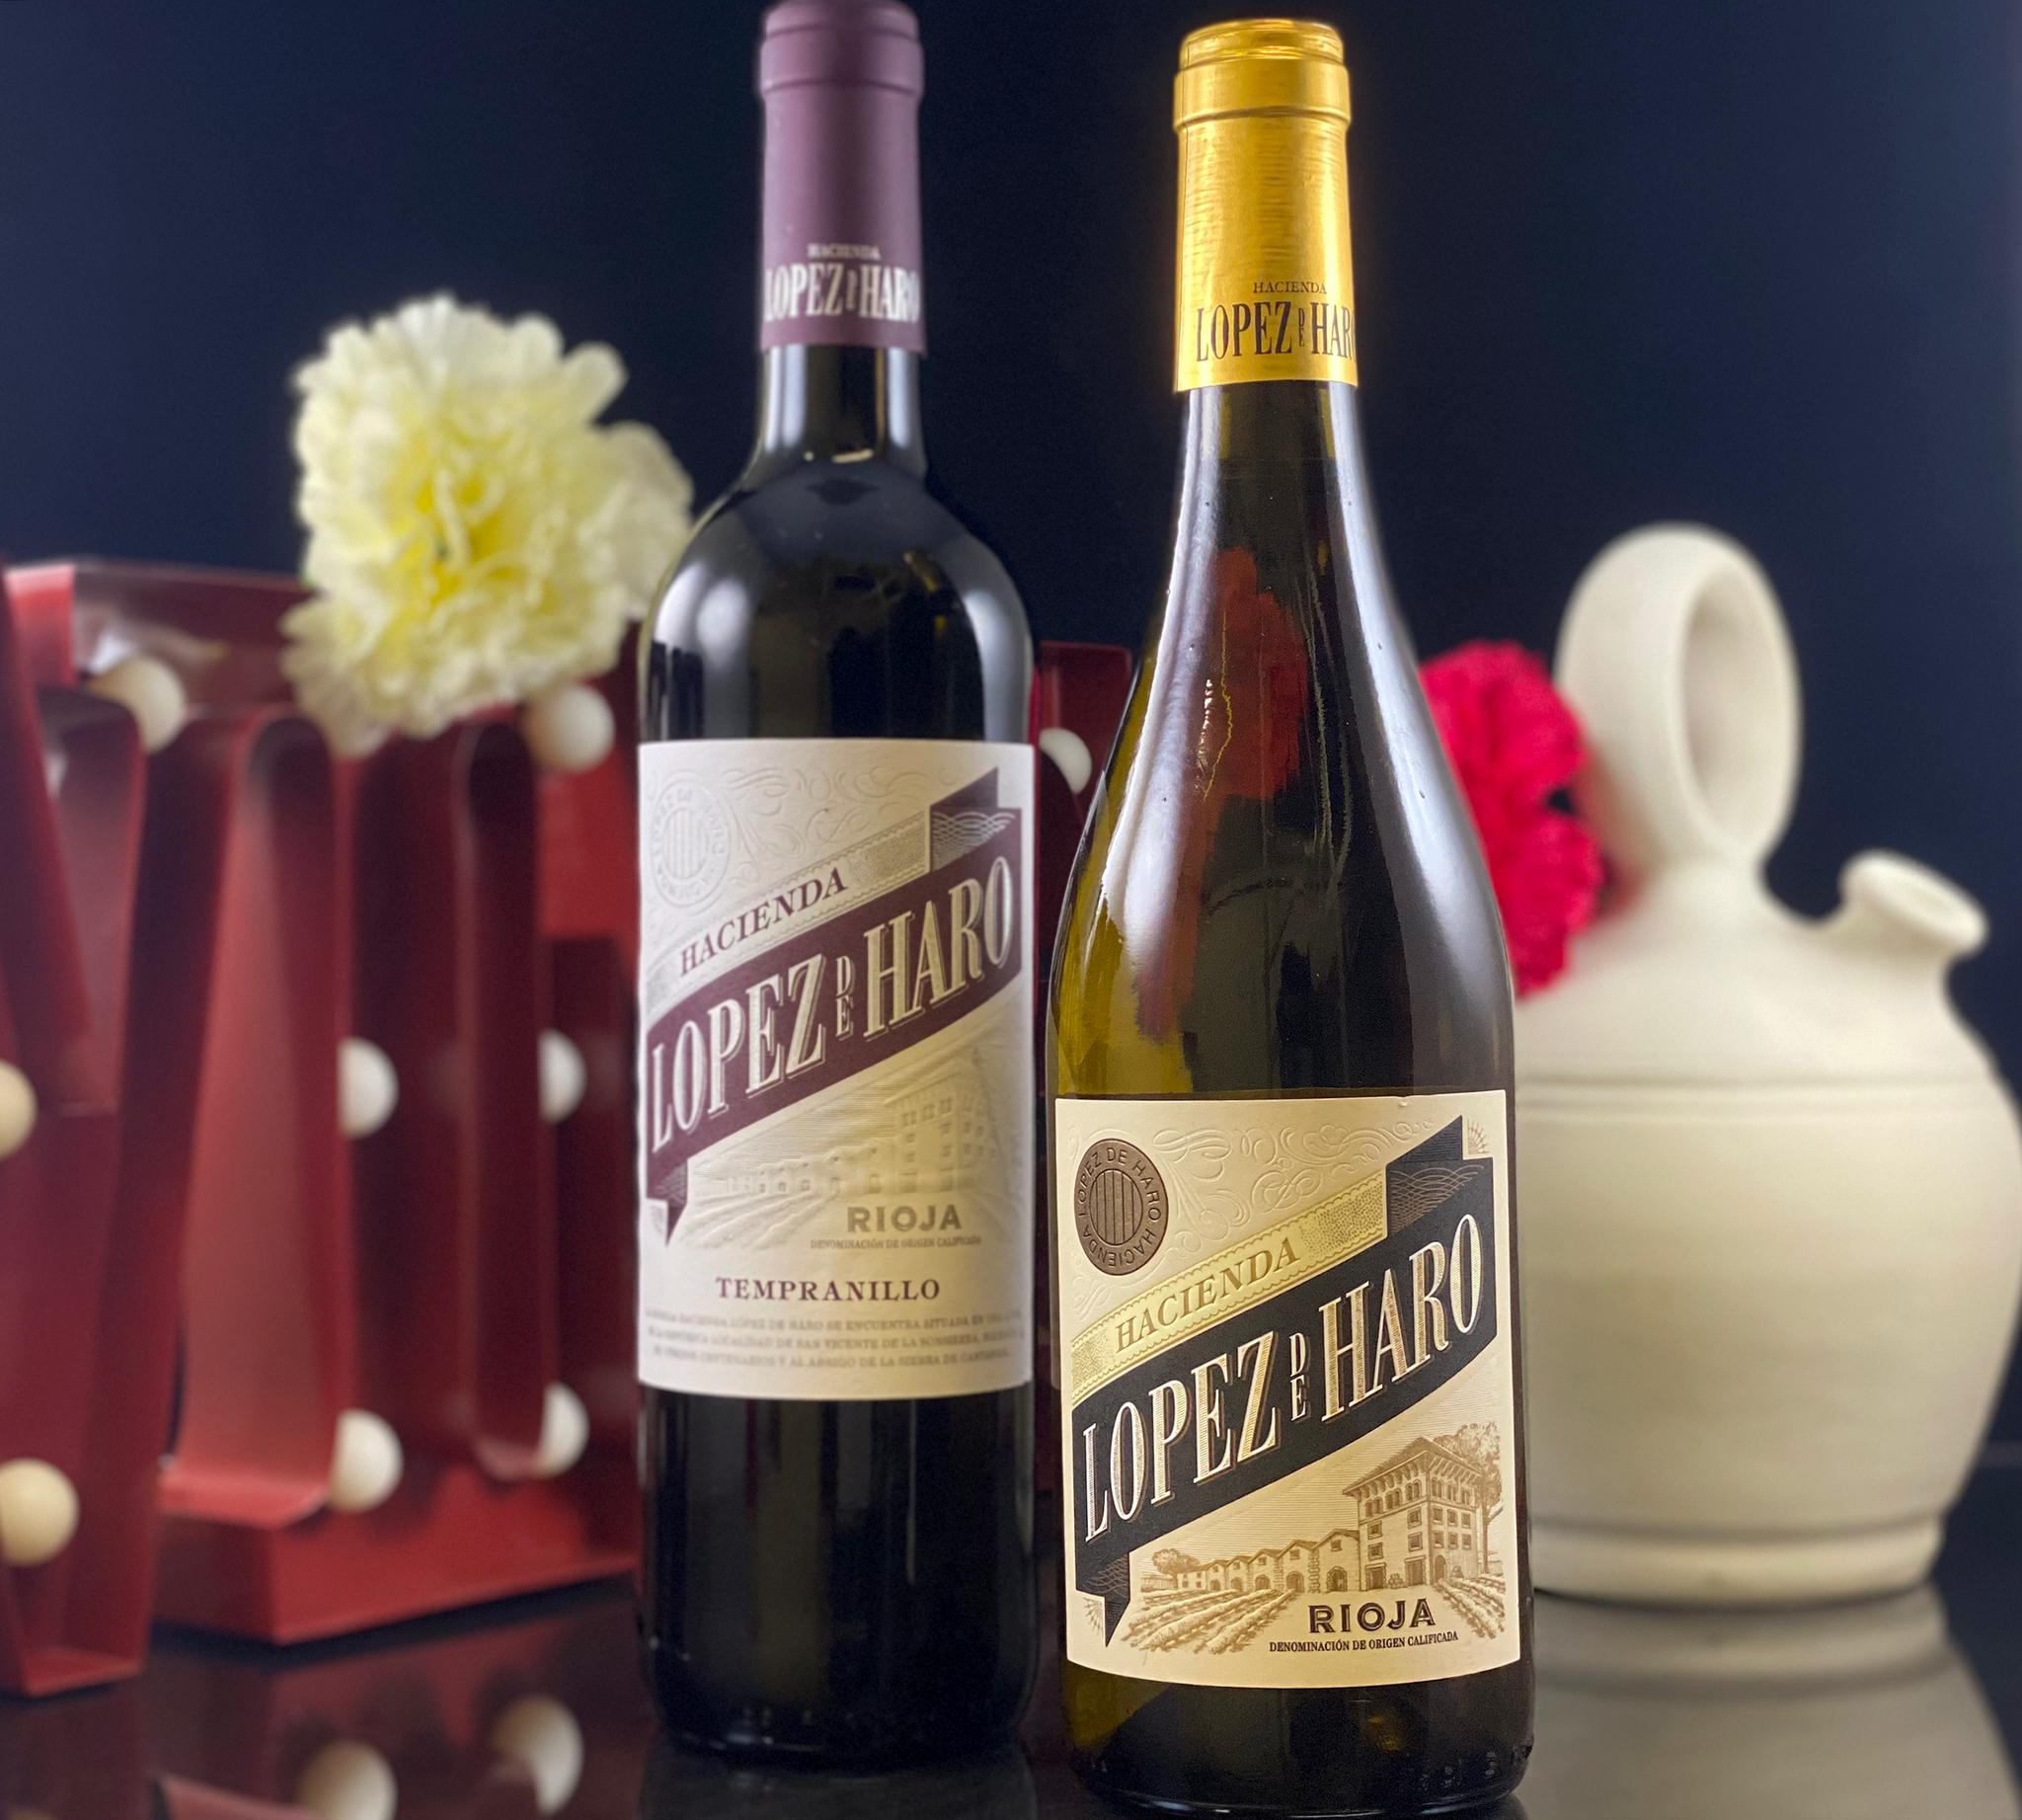 La Casa - Lopez De Haro (Red And White Bottles)